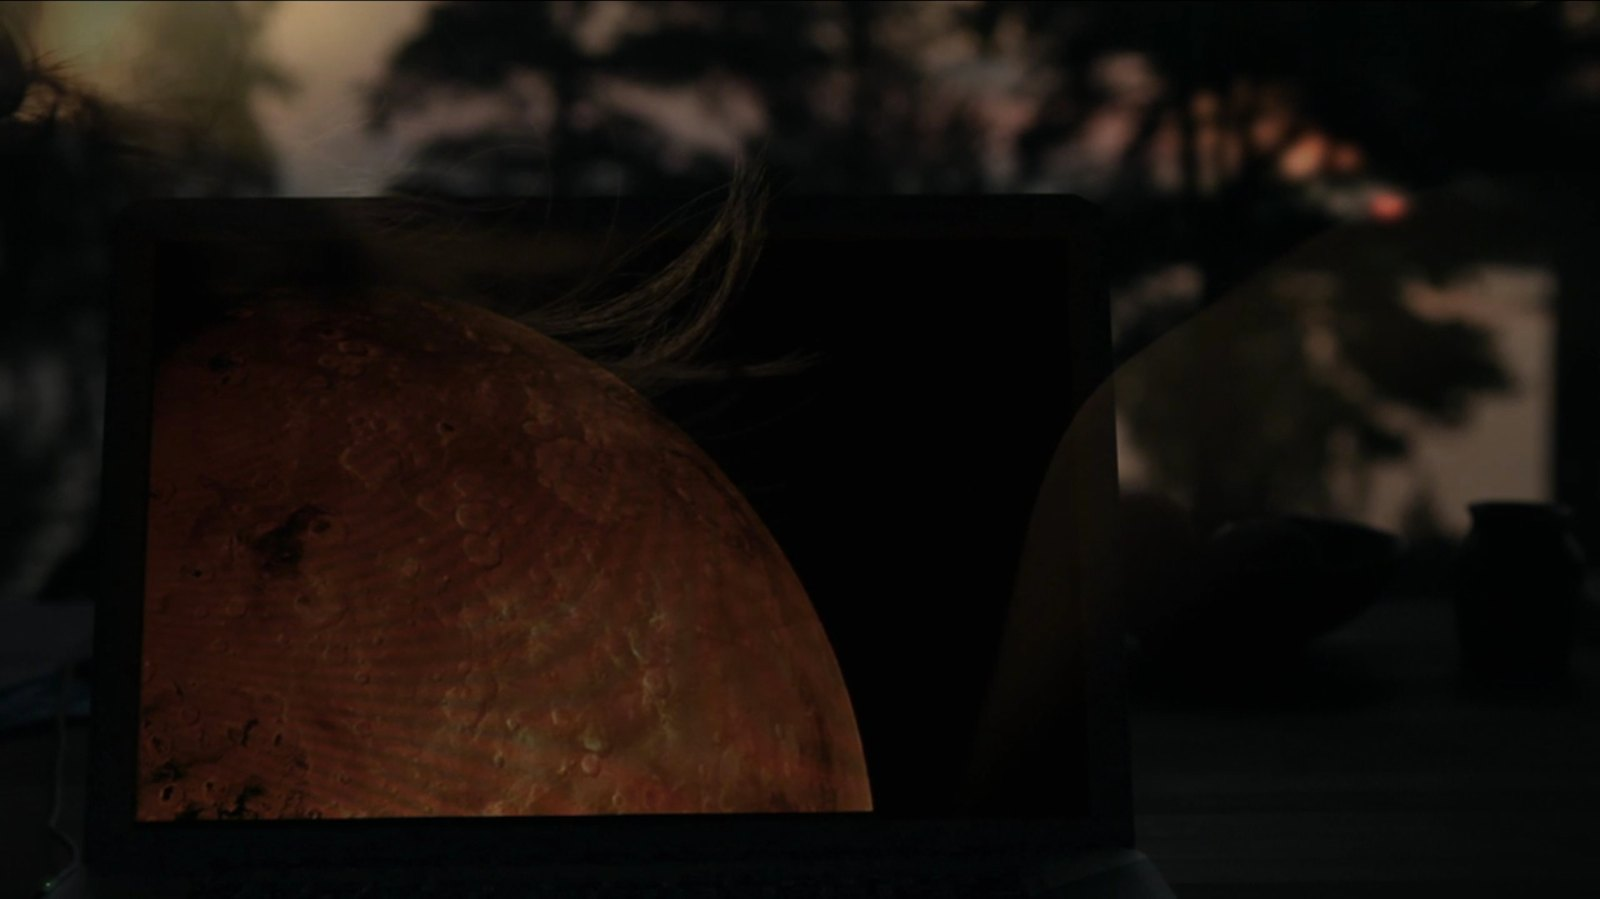 Still from Sunsets, 2012, HD video with sound, 22:30 minutes